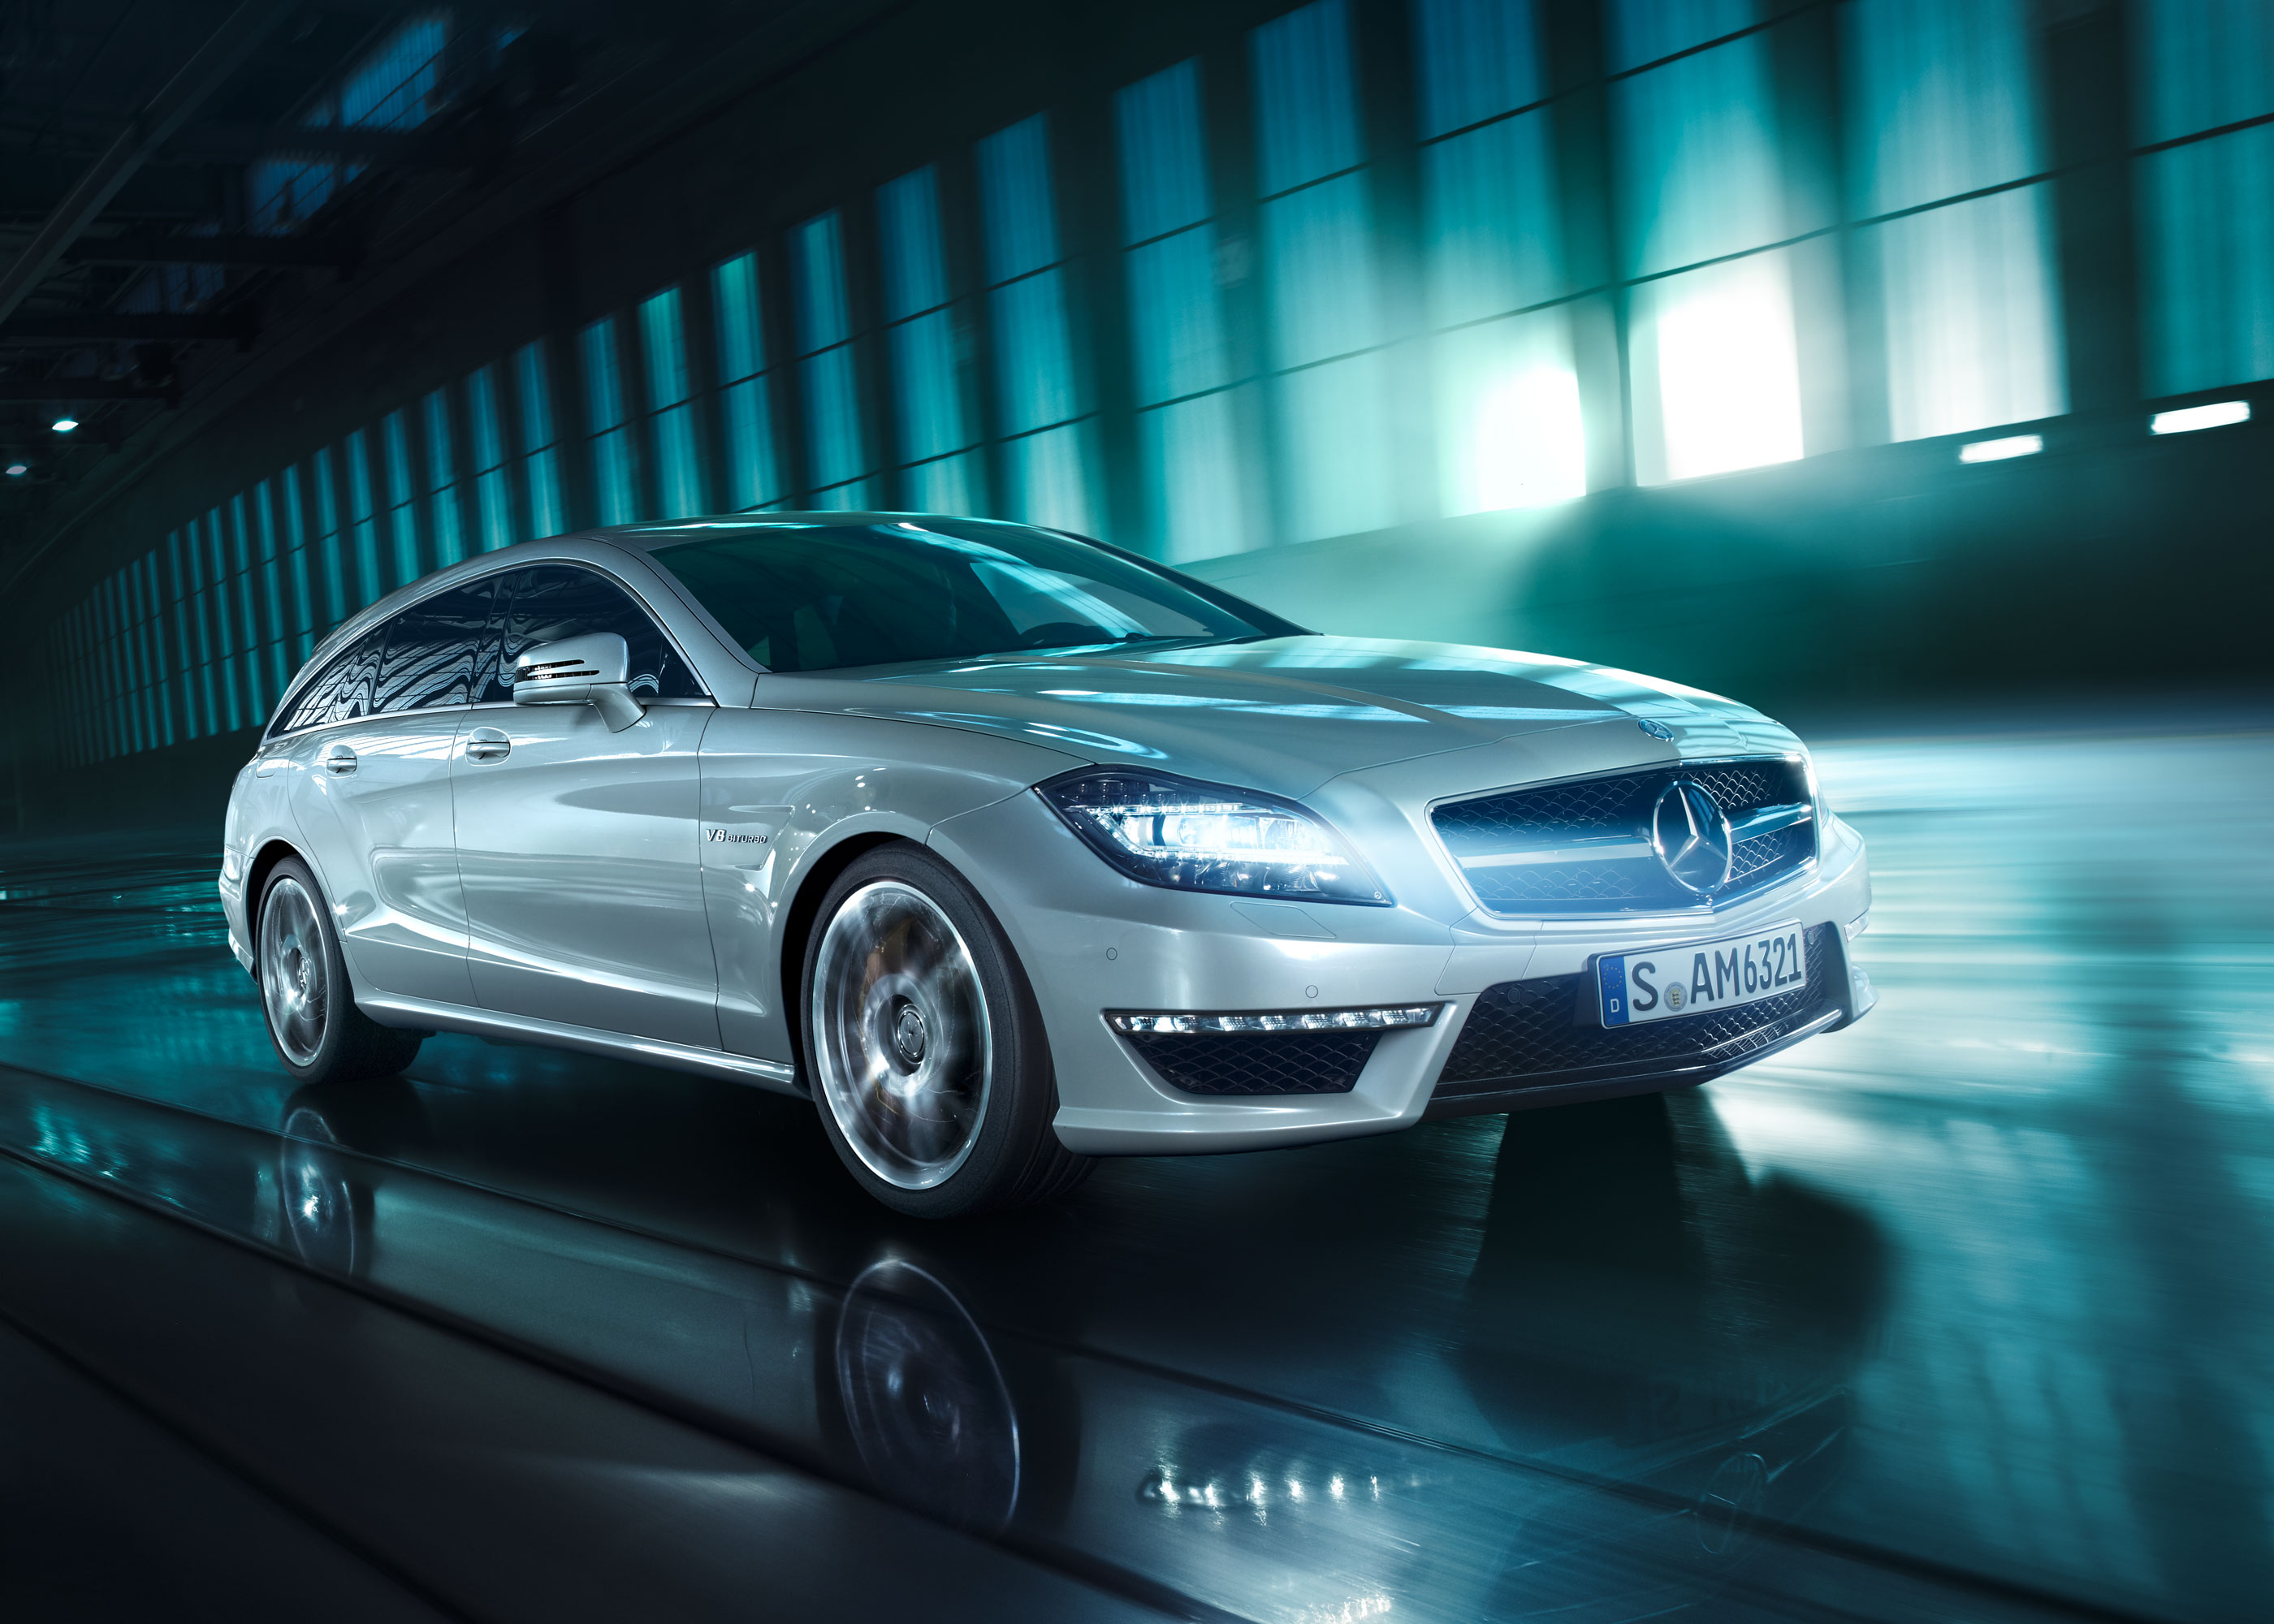 Olaf Hauschulz, Mercedes CLS Shooting Brake, Industrial places, green, natural light